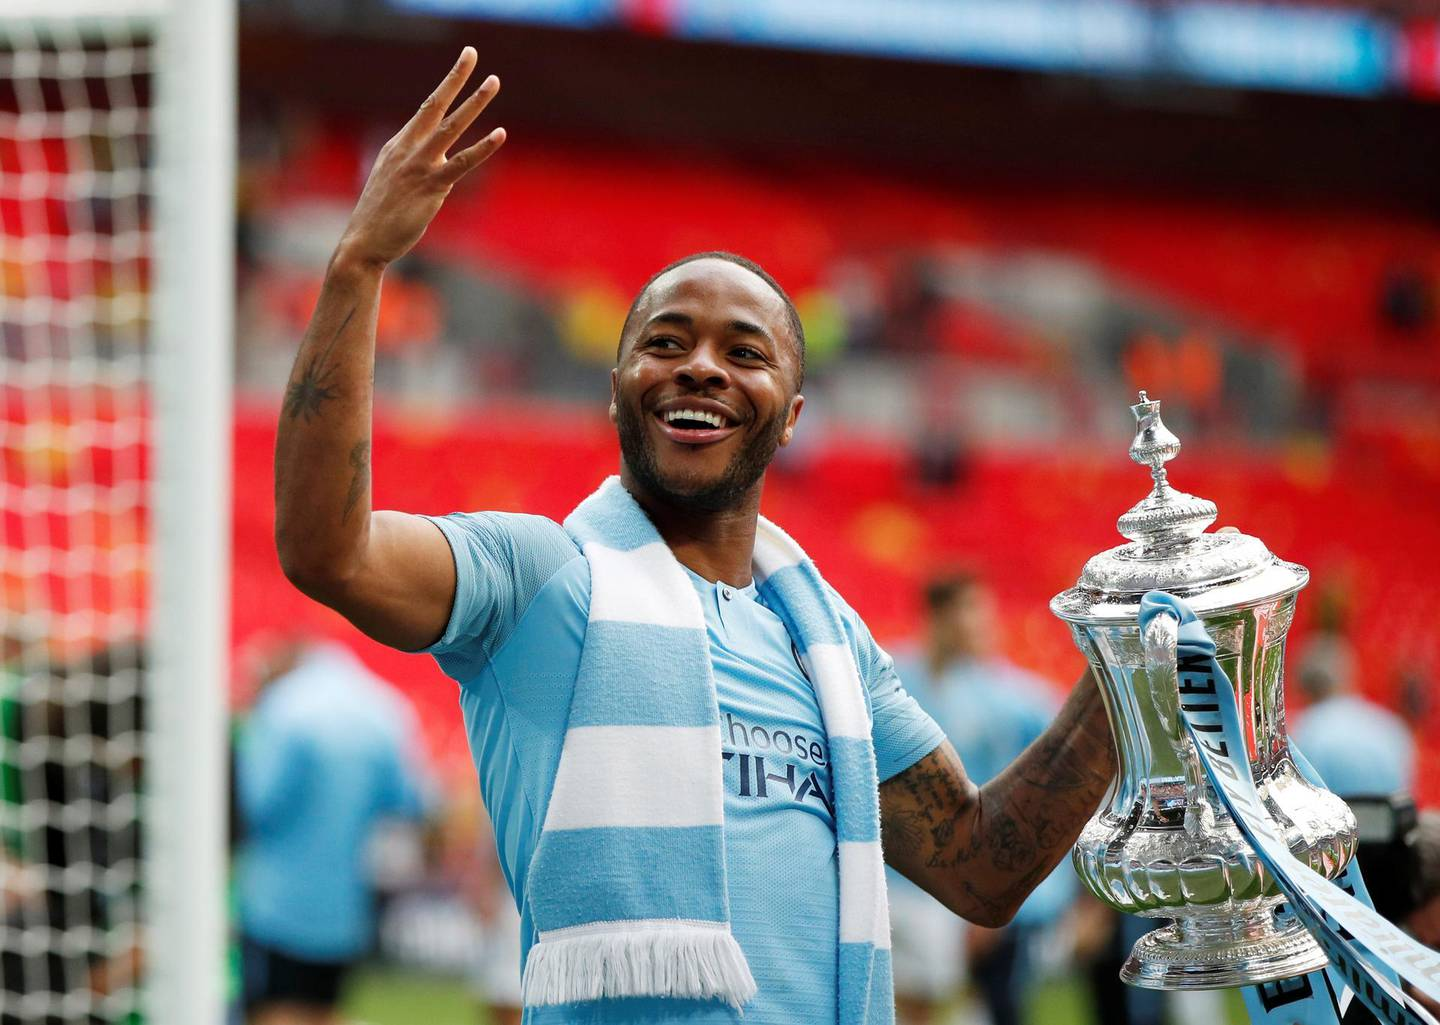 Soccer Football - FA Cup Final - Manchester City v Watford - Wembley Stadium, London, Britain - May 18, 2019  Manchester City's Raheem Sterling celebrates with the trophy after winning the FA Cup  Action Images via Reuters/John Sibley